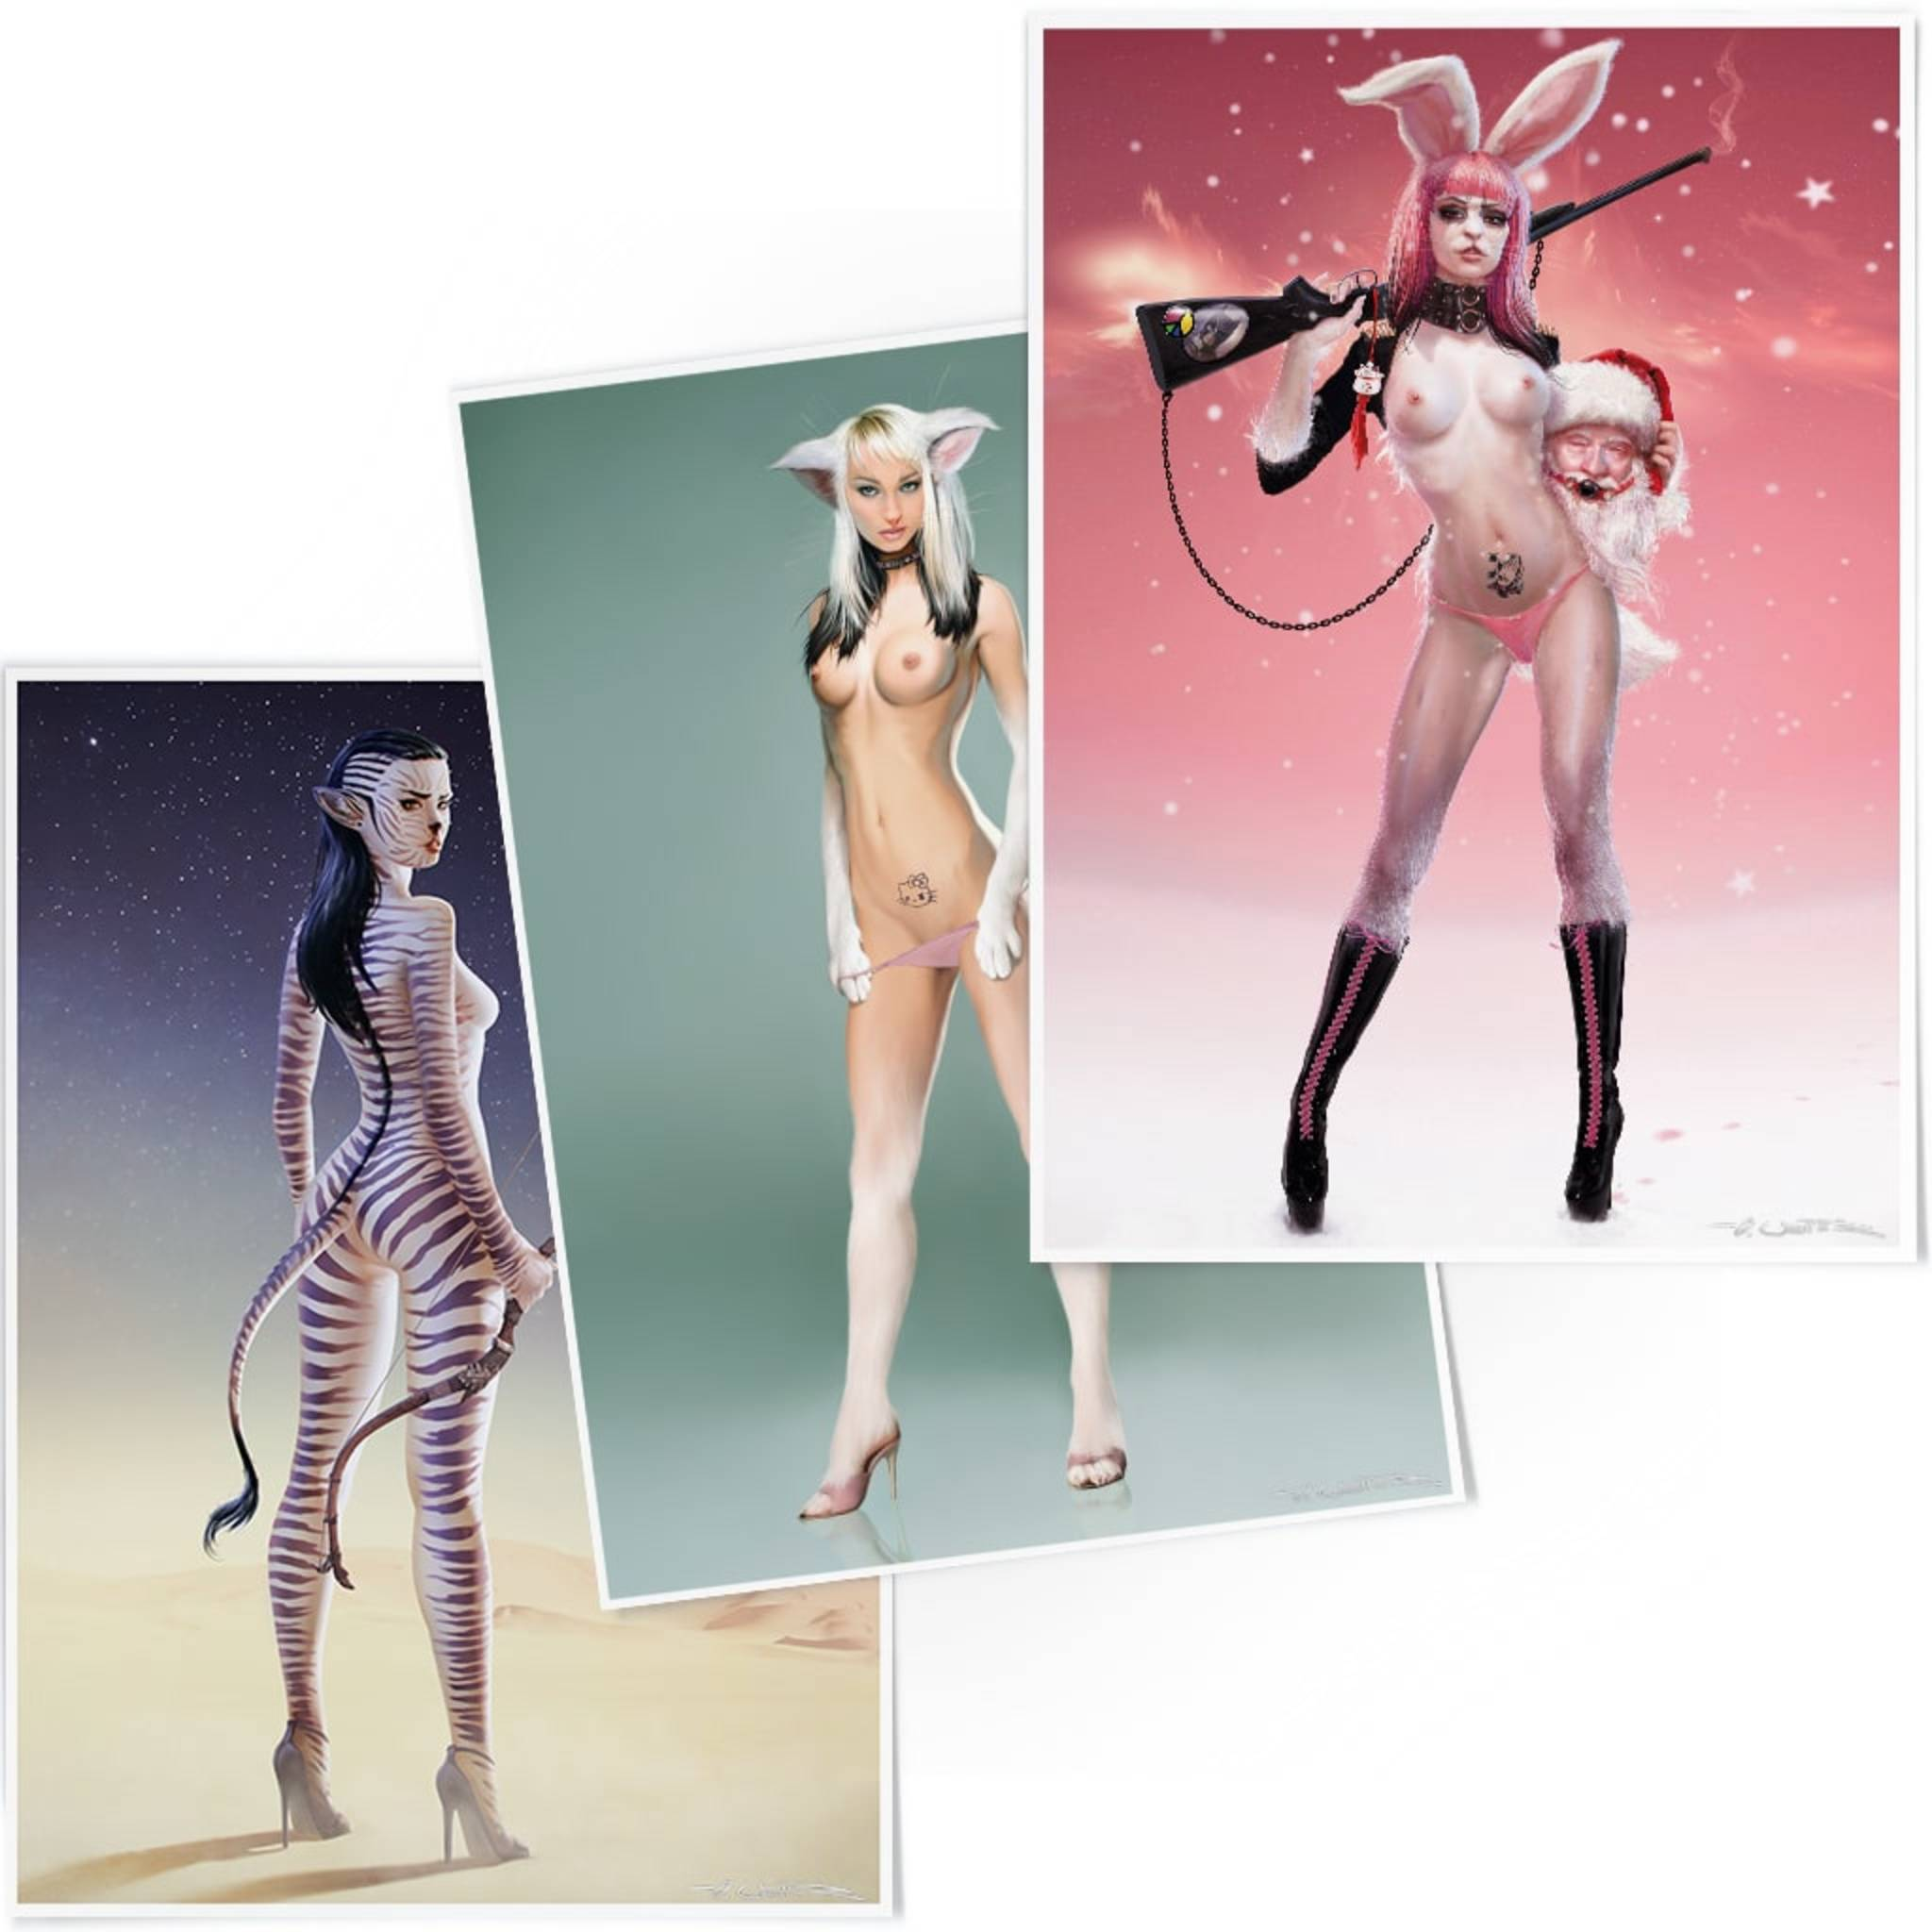 Neko the Catwoman, Easterbunny VS. Santa & Cebragirl Bundle